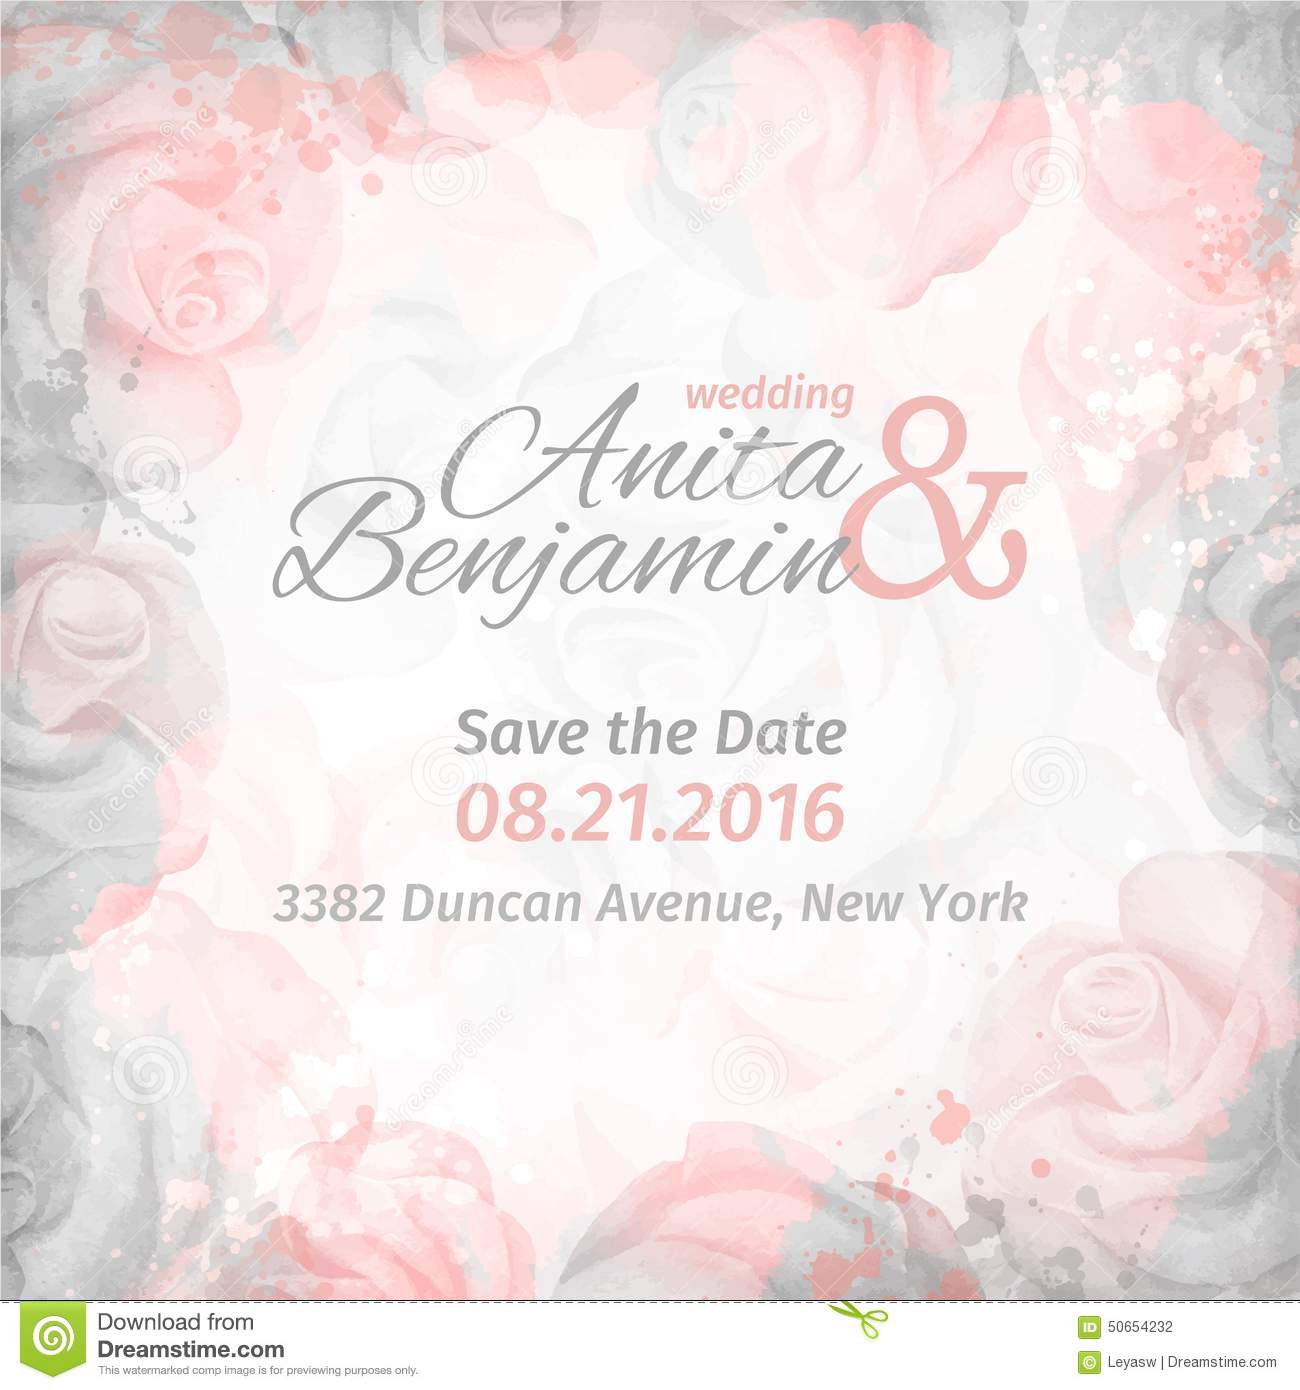 Invitation To The Wedding. Abstract Romantic Rose Background In Pink ...